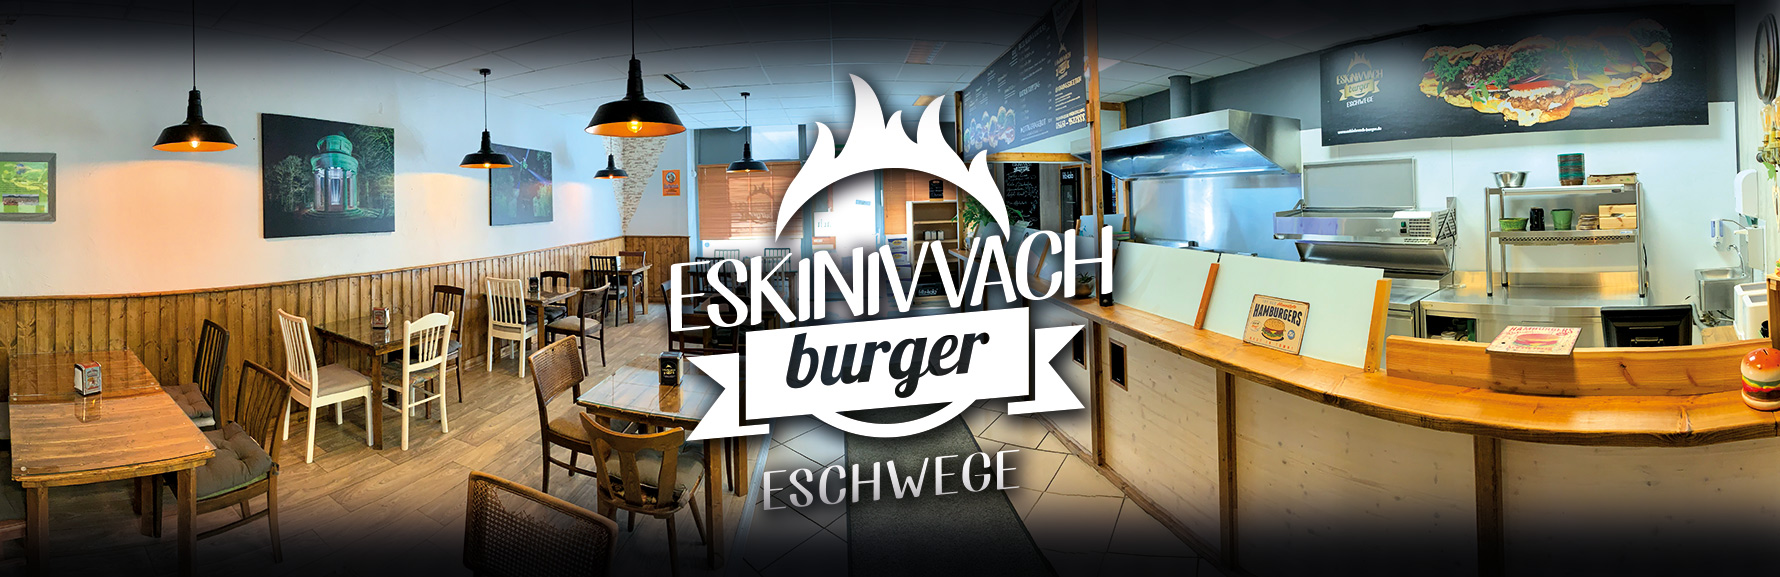 Eskinivvach Location